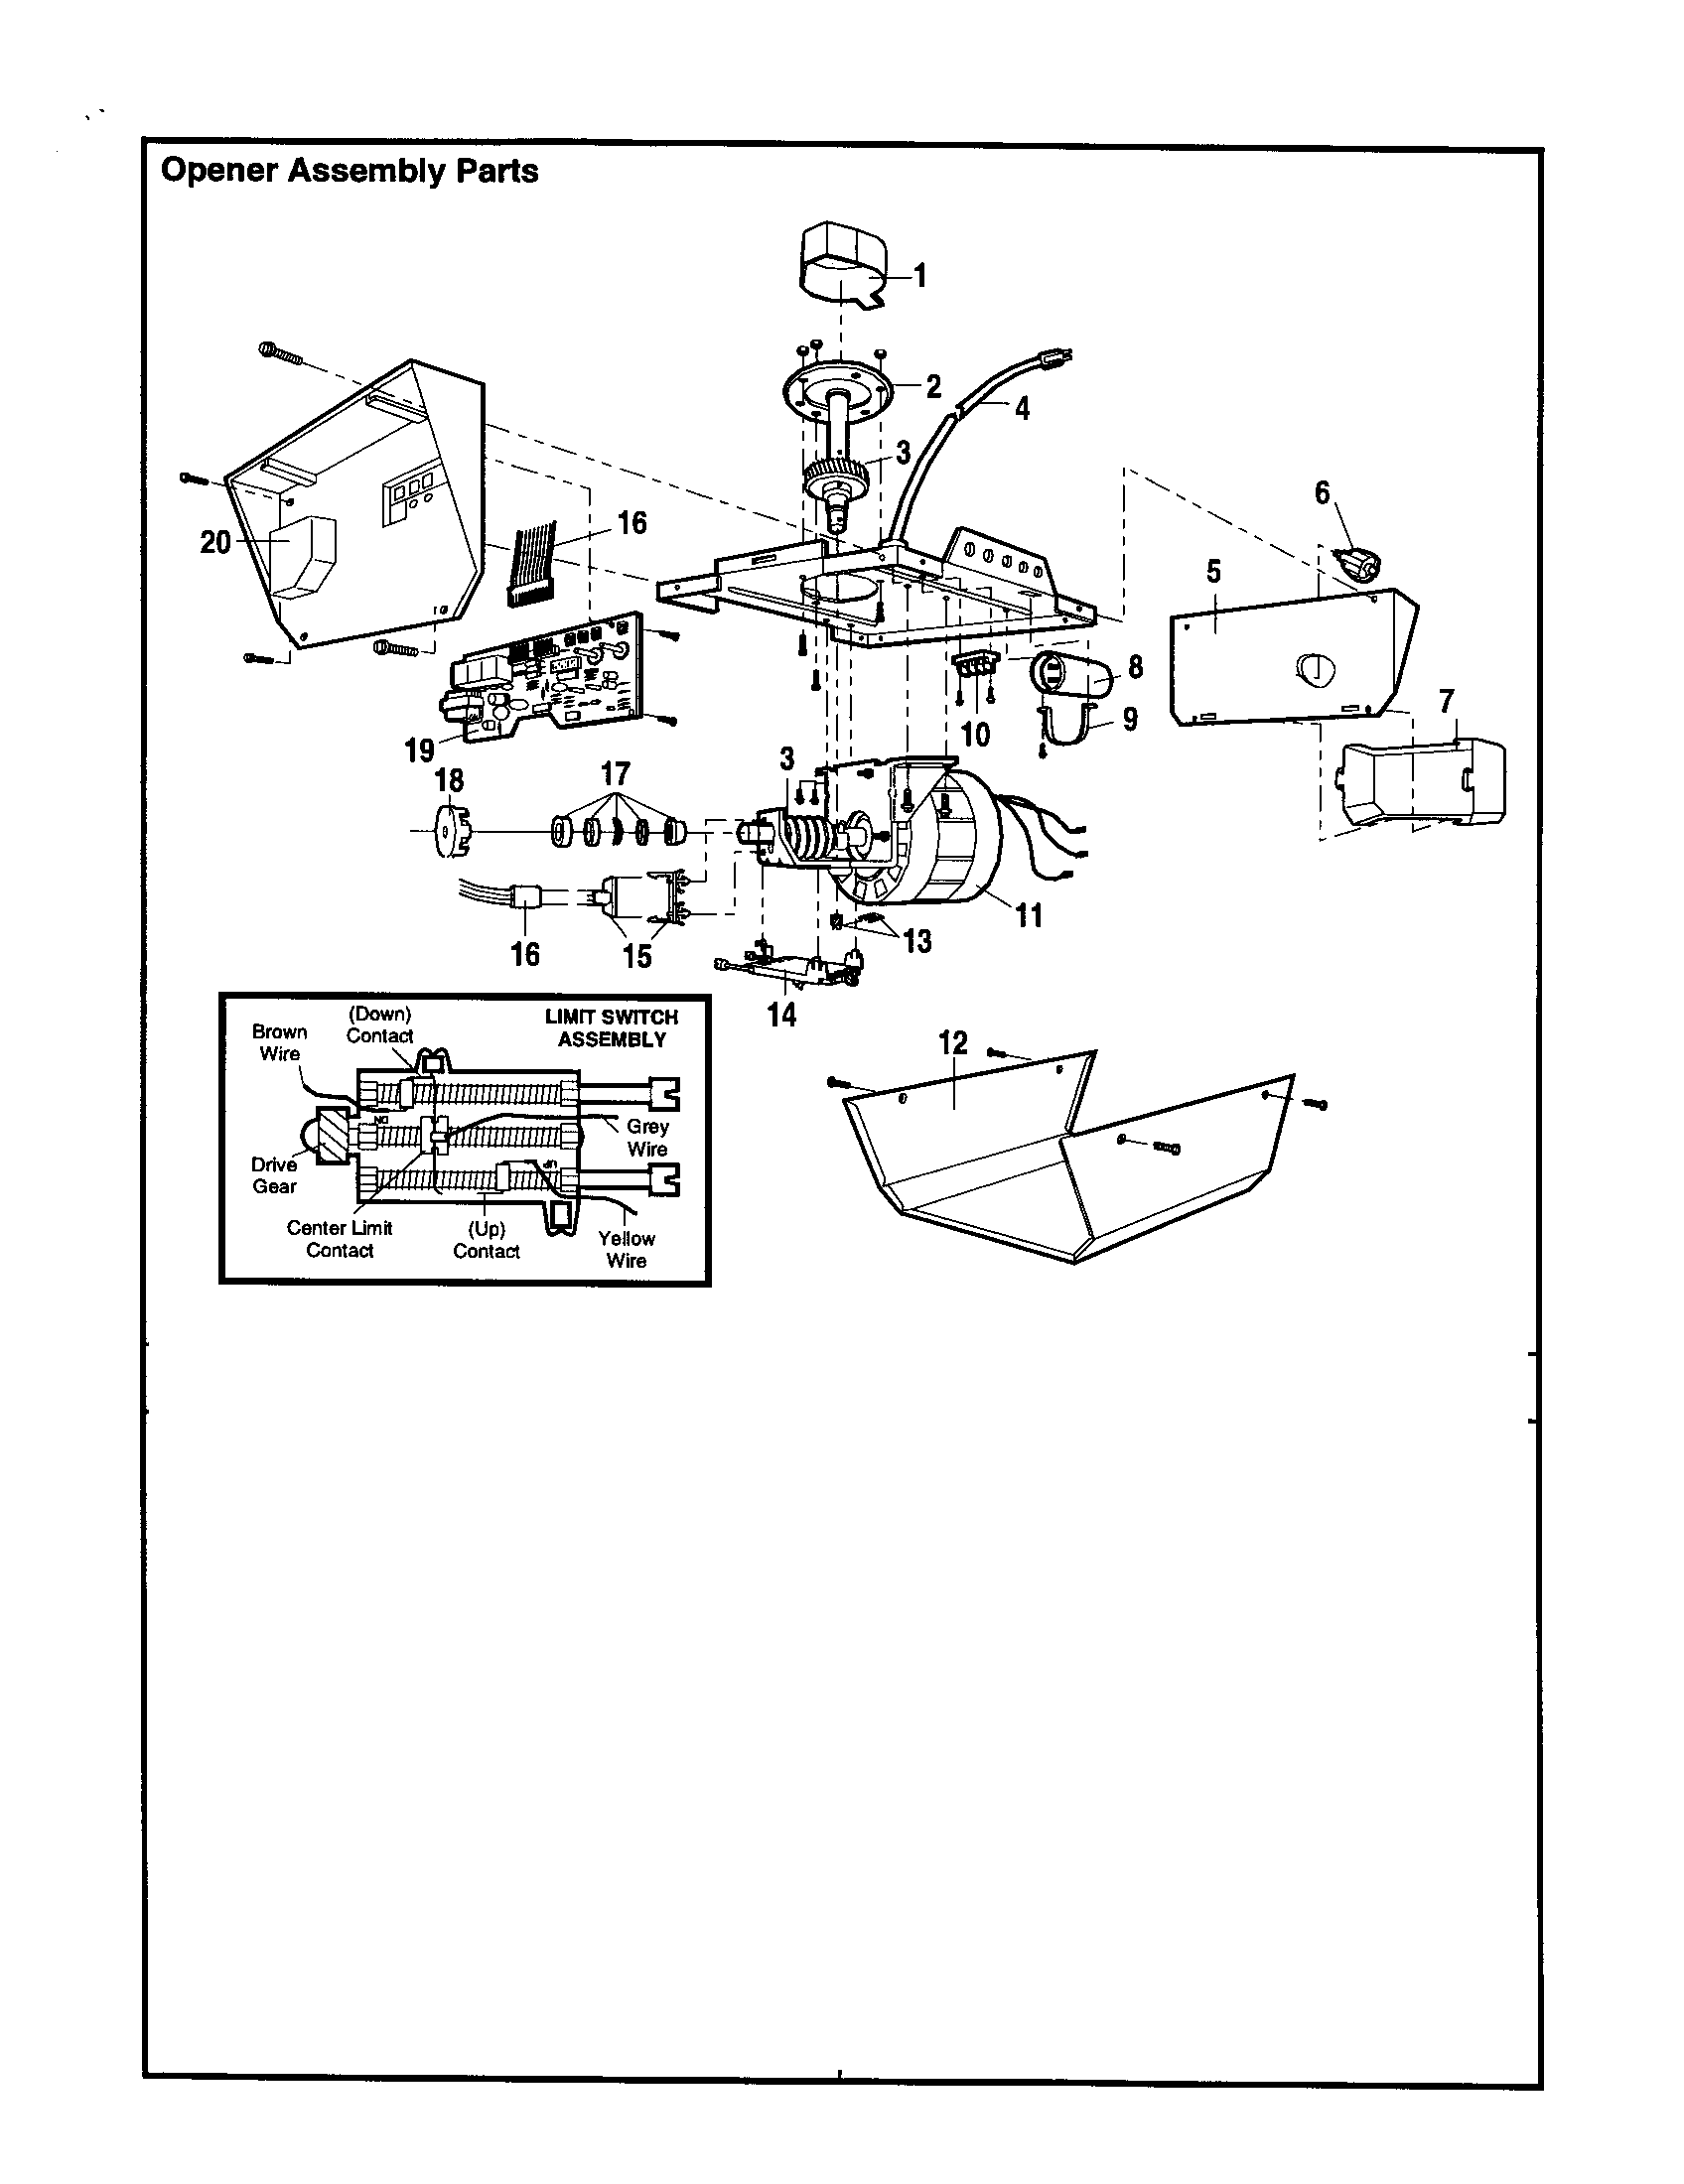 OPENER ASSEMBLY Diagram & Parts List for Model 13953650SRT